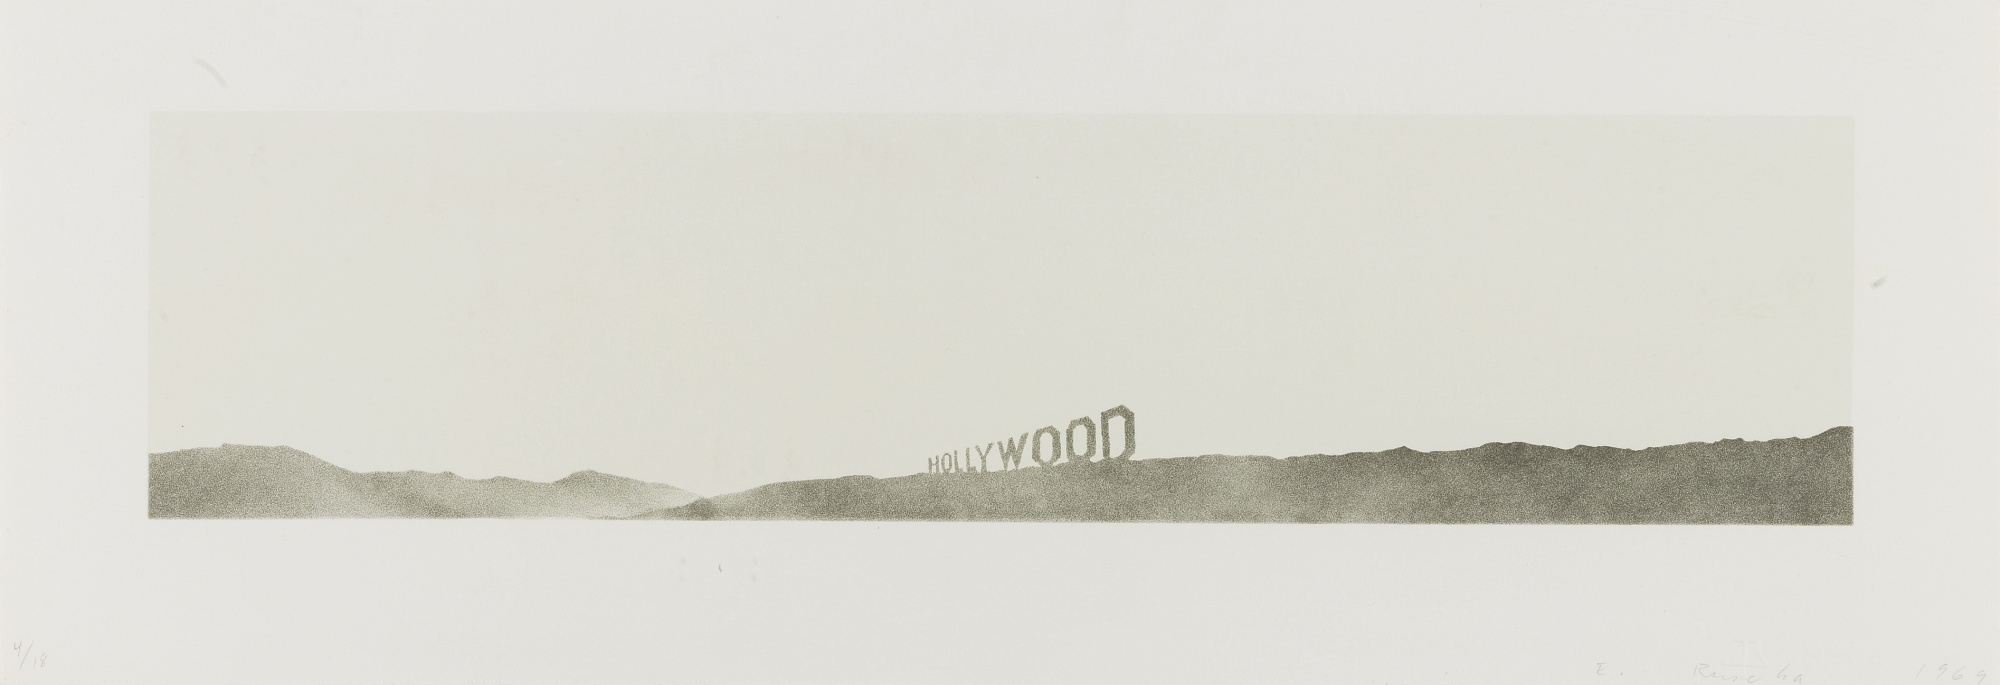 Ed Ruscha-Hollywood (Walker Art Center 18)-1969